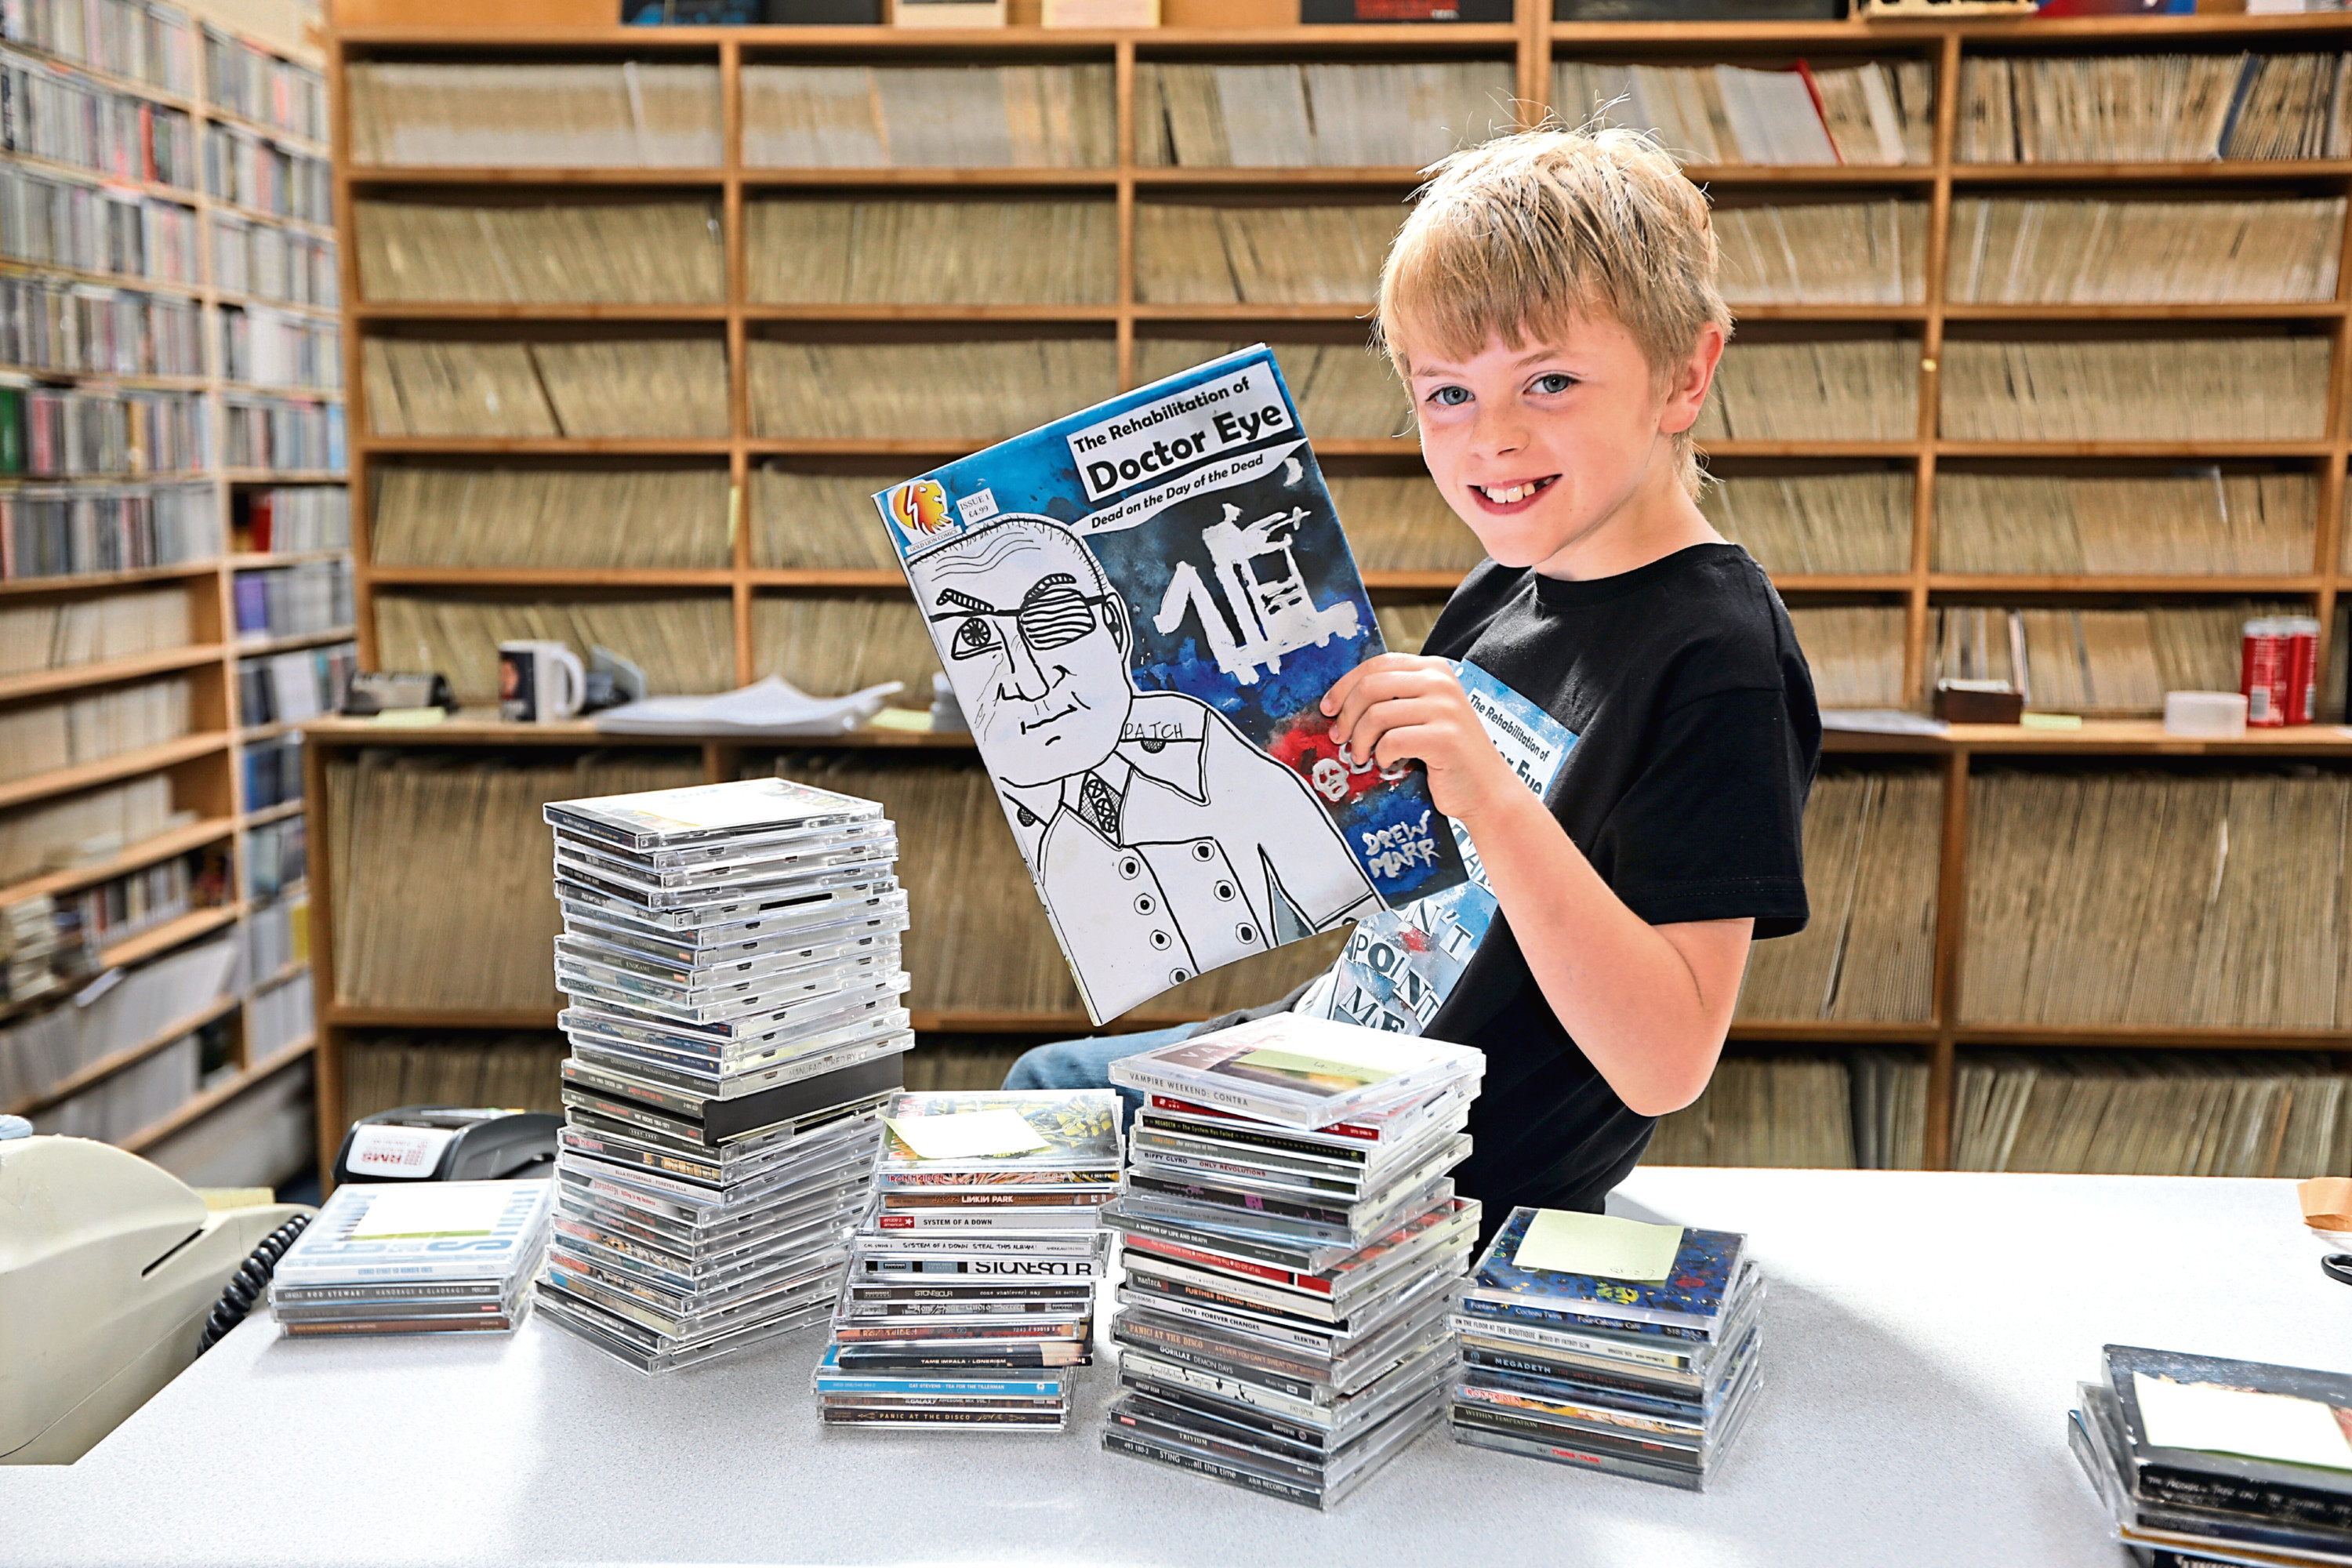 Drew Marr, 10, with a copy of the second instalment of the Doctor Eye comic he created, in Groucho's.